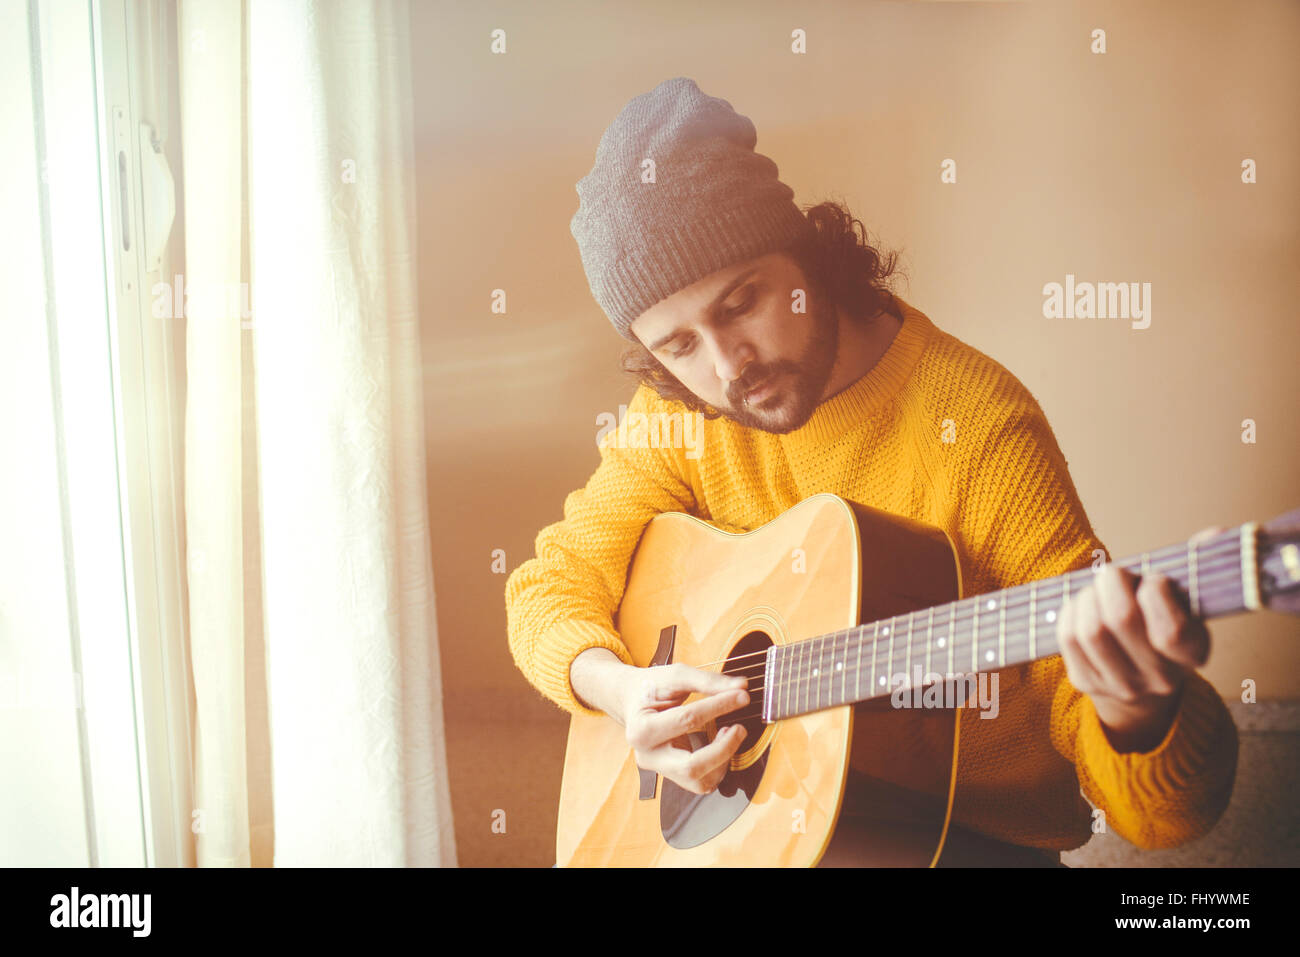 Man playing a acoustic guitar - Stock Image